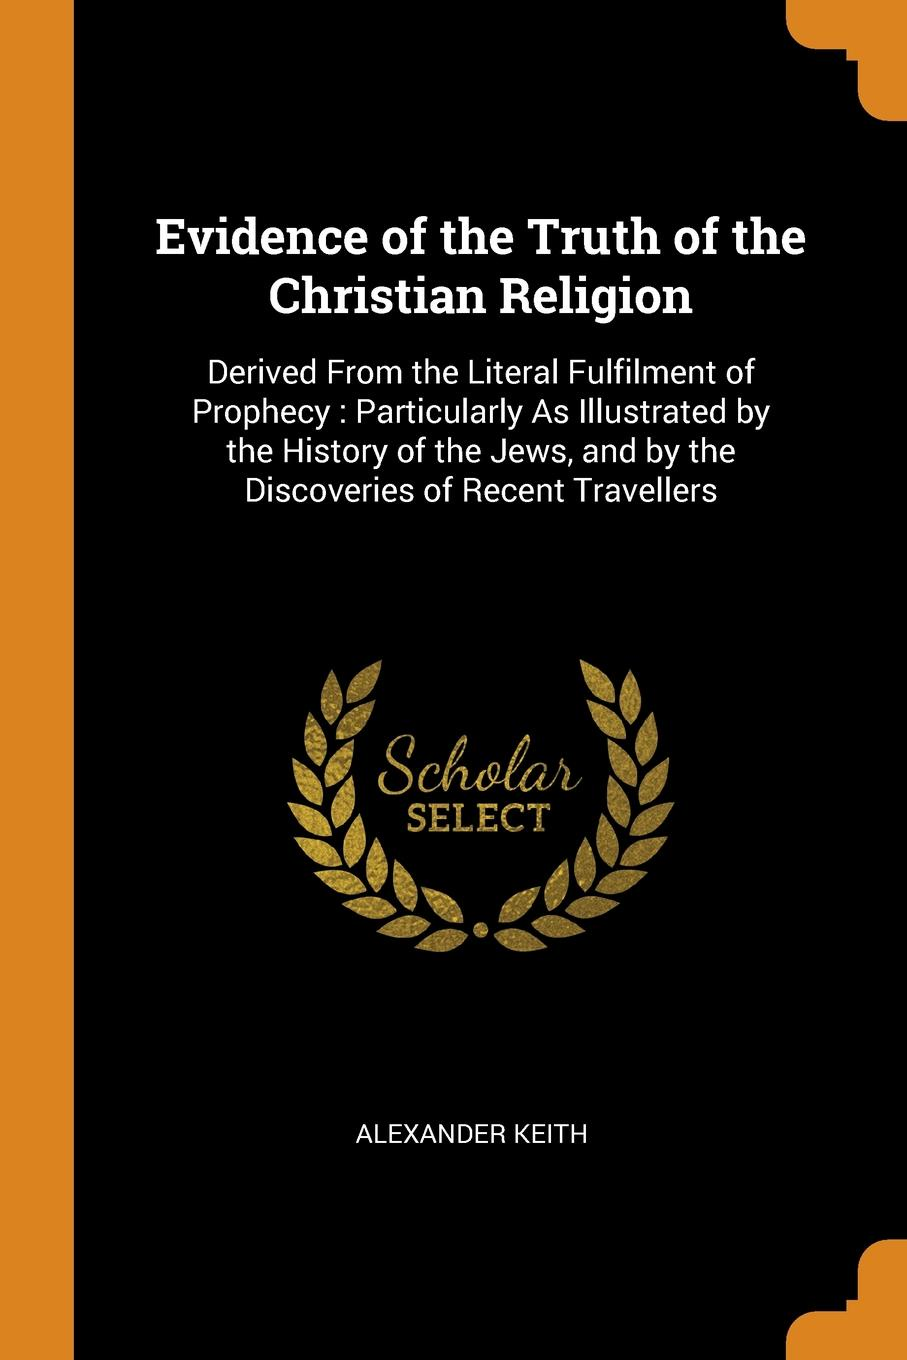 Evidence-of-the-Truth-of-the-Christian-Religion-Derived-From-the-Literal-Fulfilment-of-Prophecy--Particularly-As-Illustrated-by-the-History-of-the-Jew